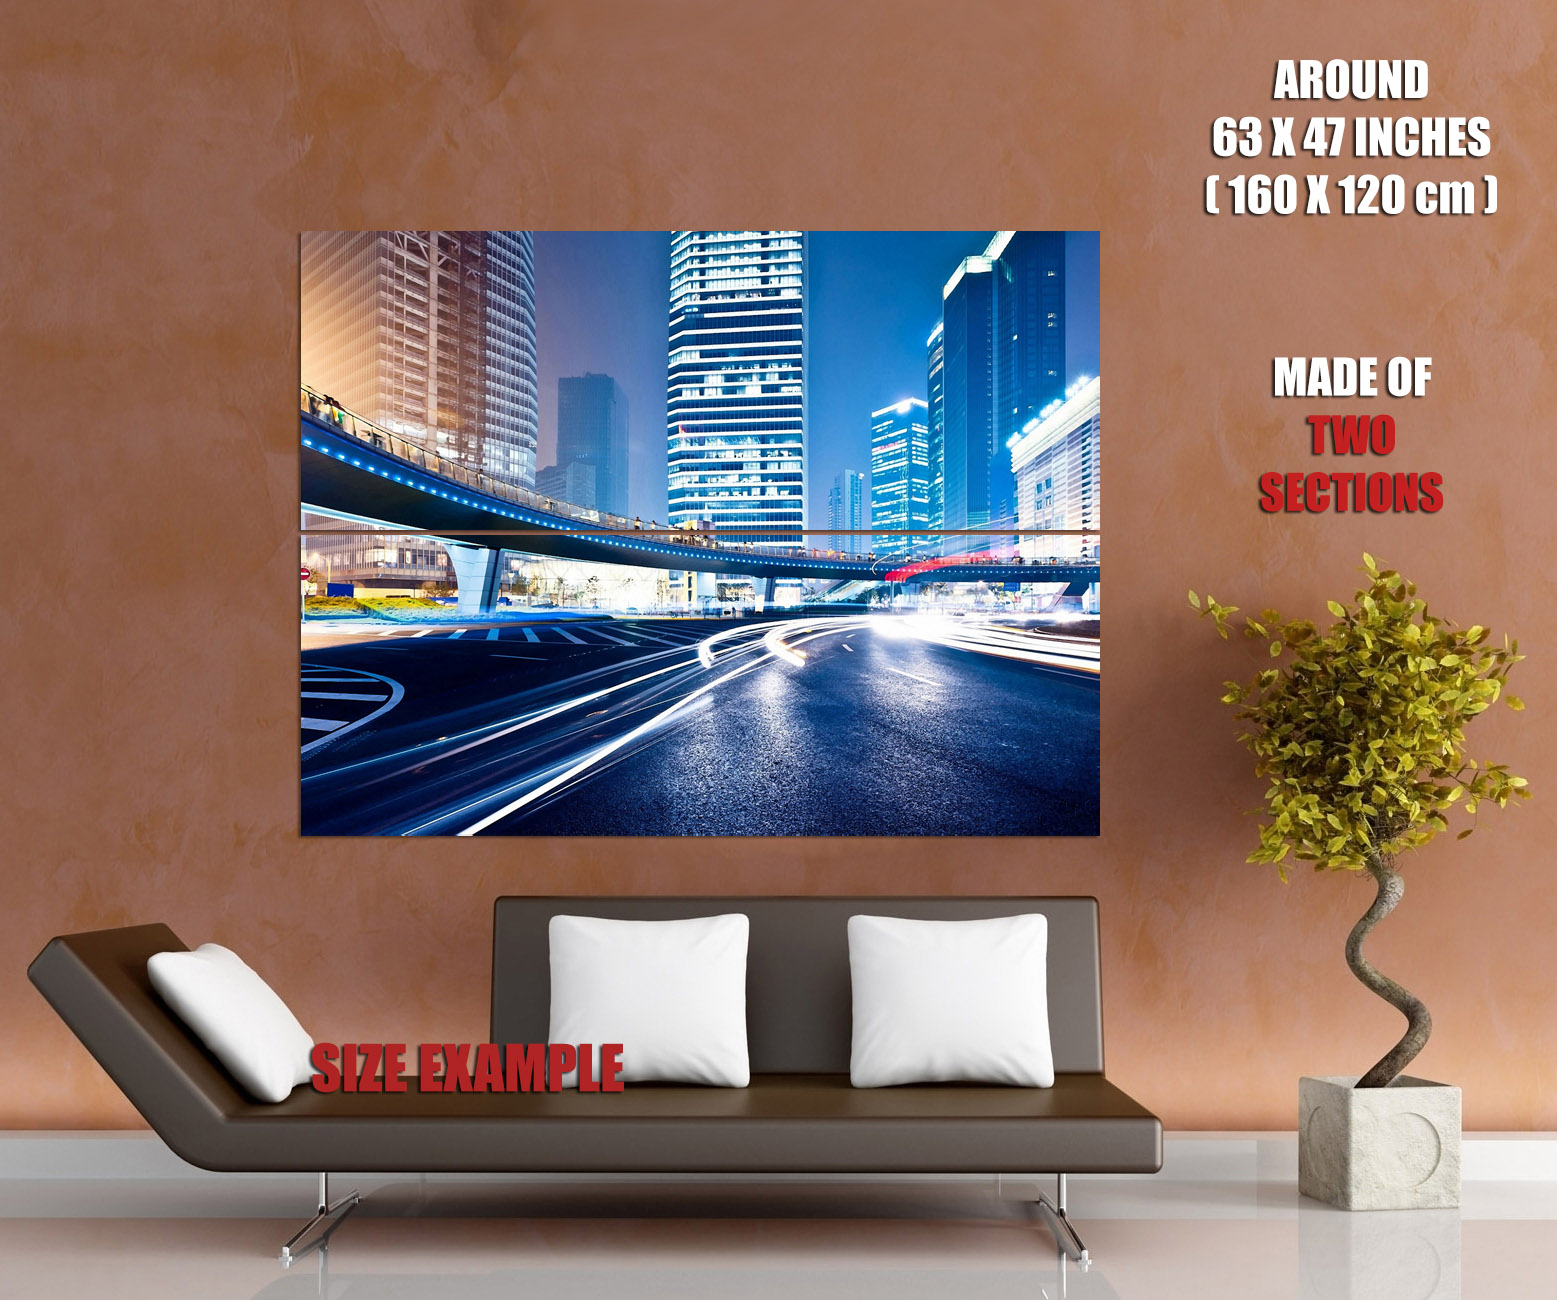 Awesome-Timelapse-City-Megapolis-Traffic-Lights-Road-Wall-Print-POSTER-AU